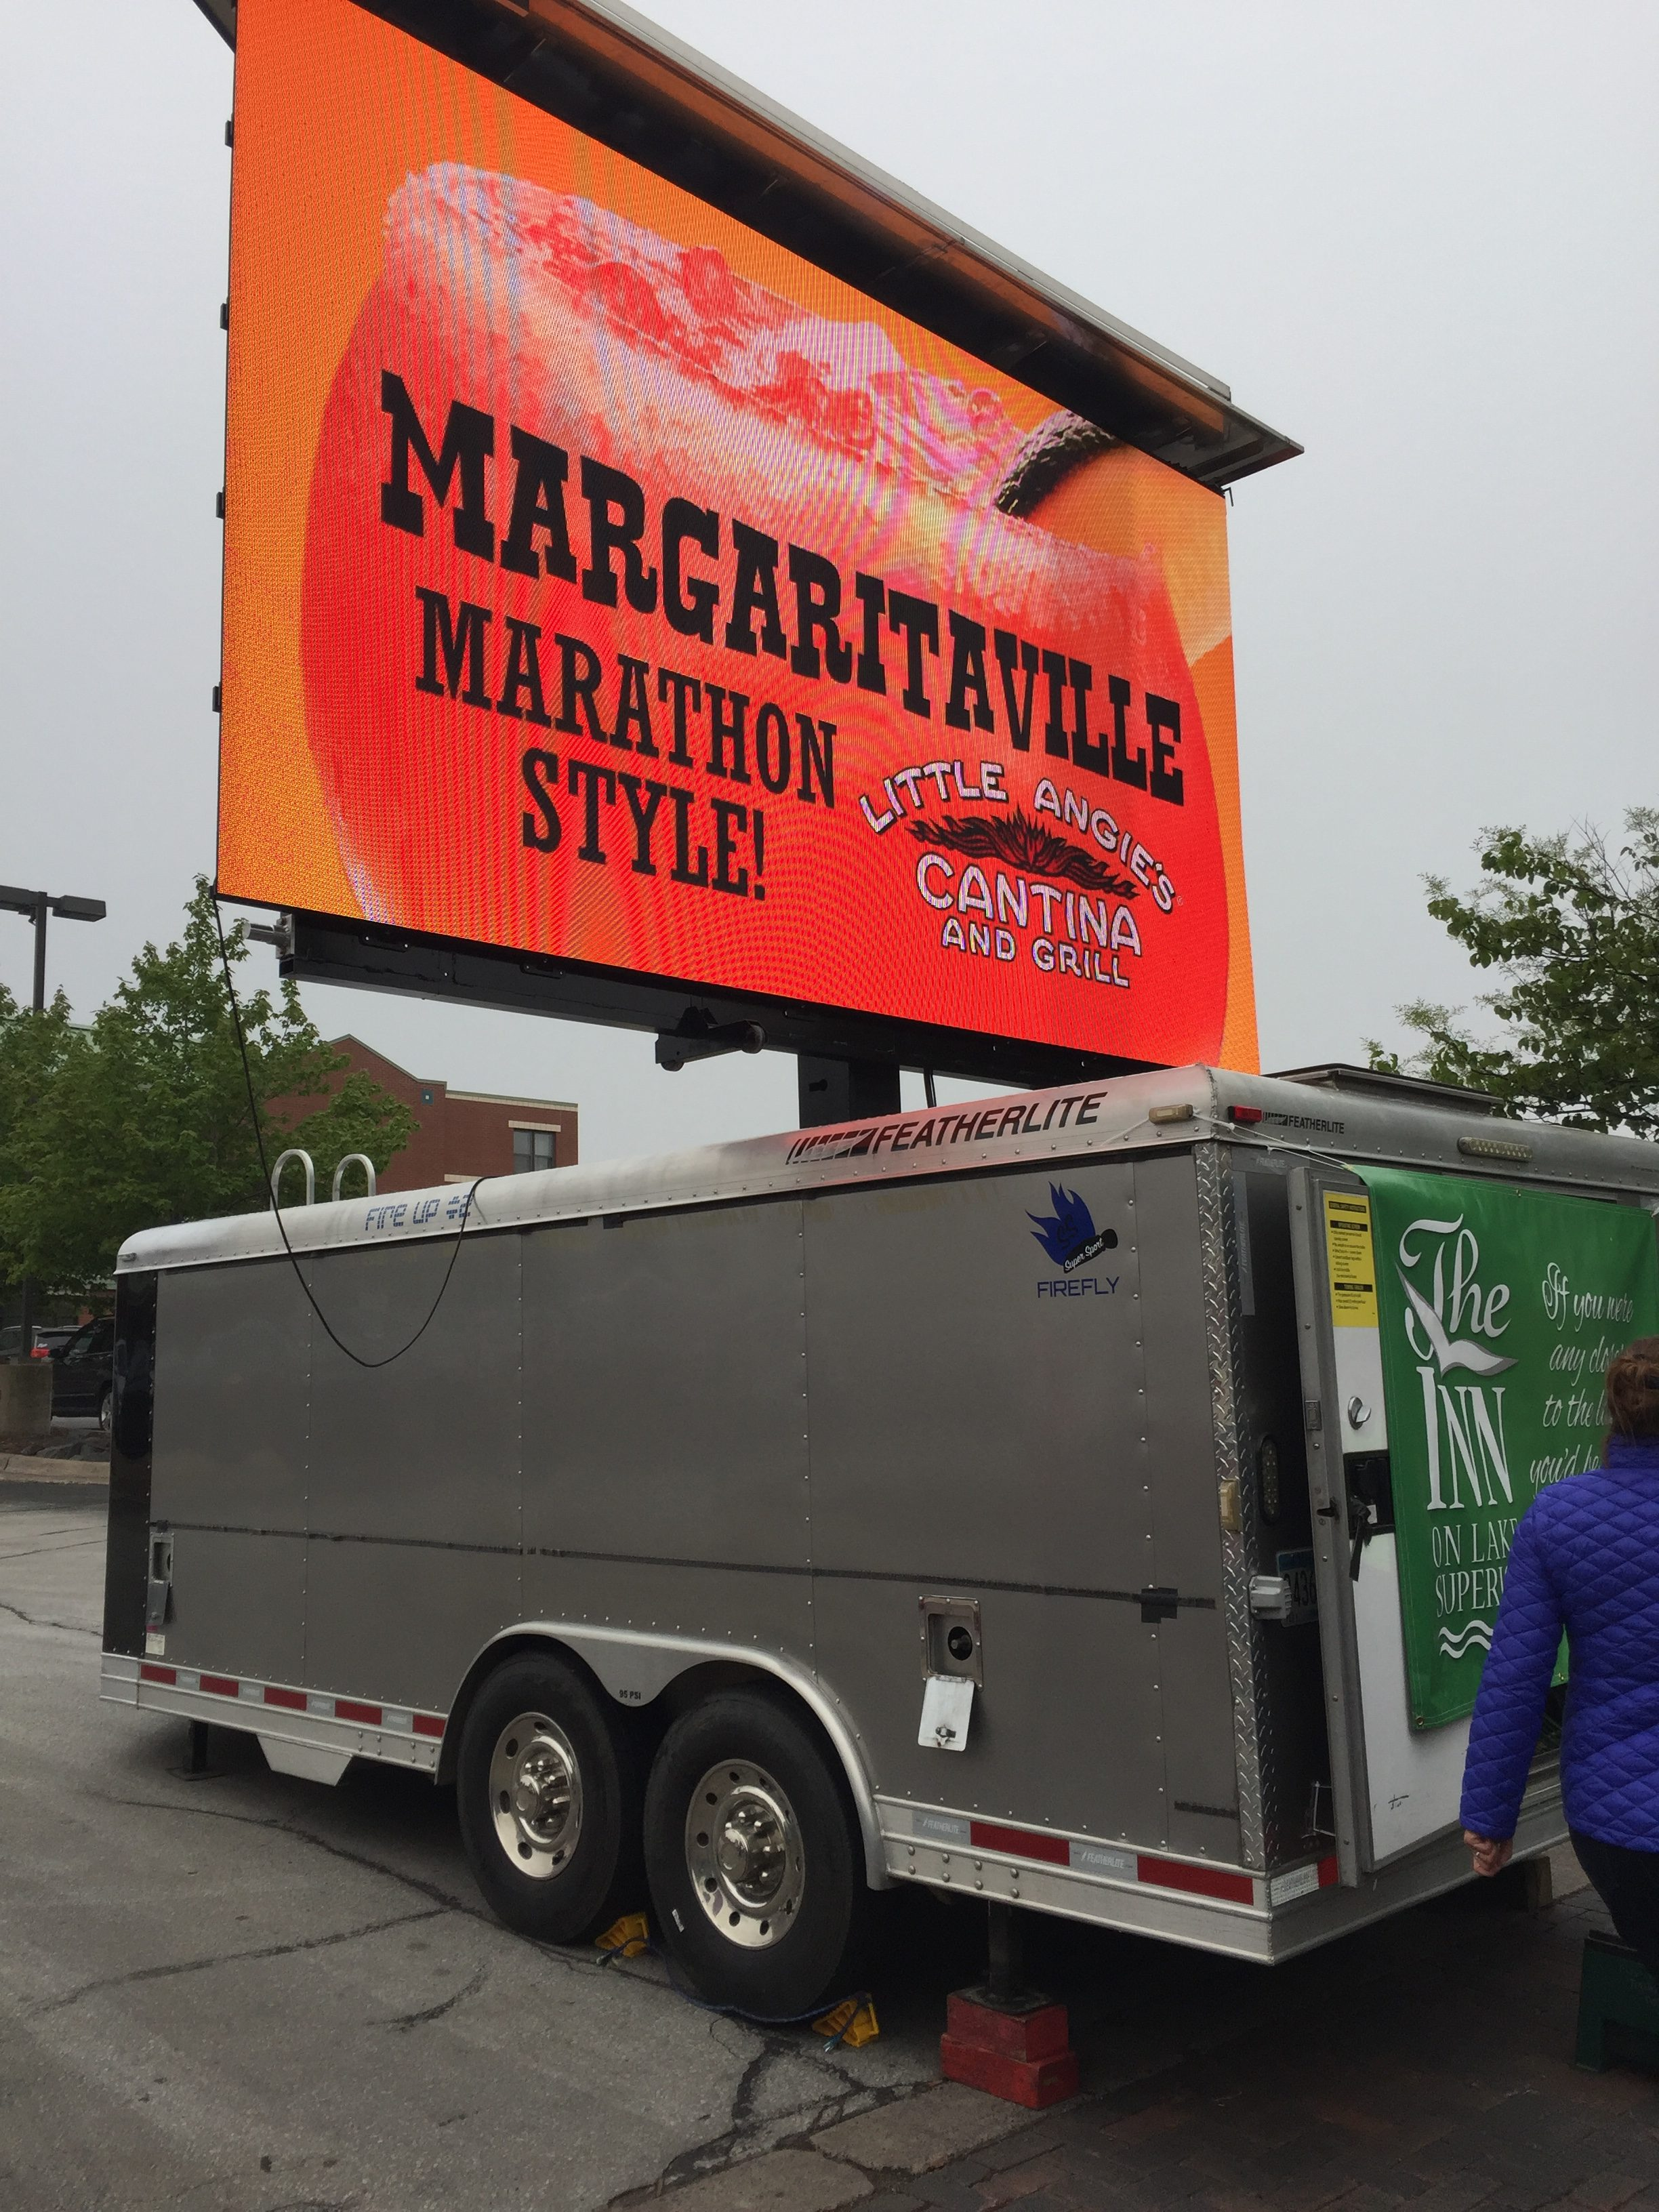 led video screens for outdoor events in milwaukee wisconsin jumbotron rental